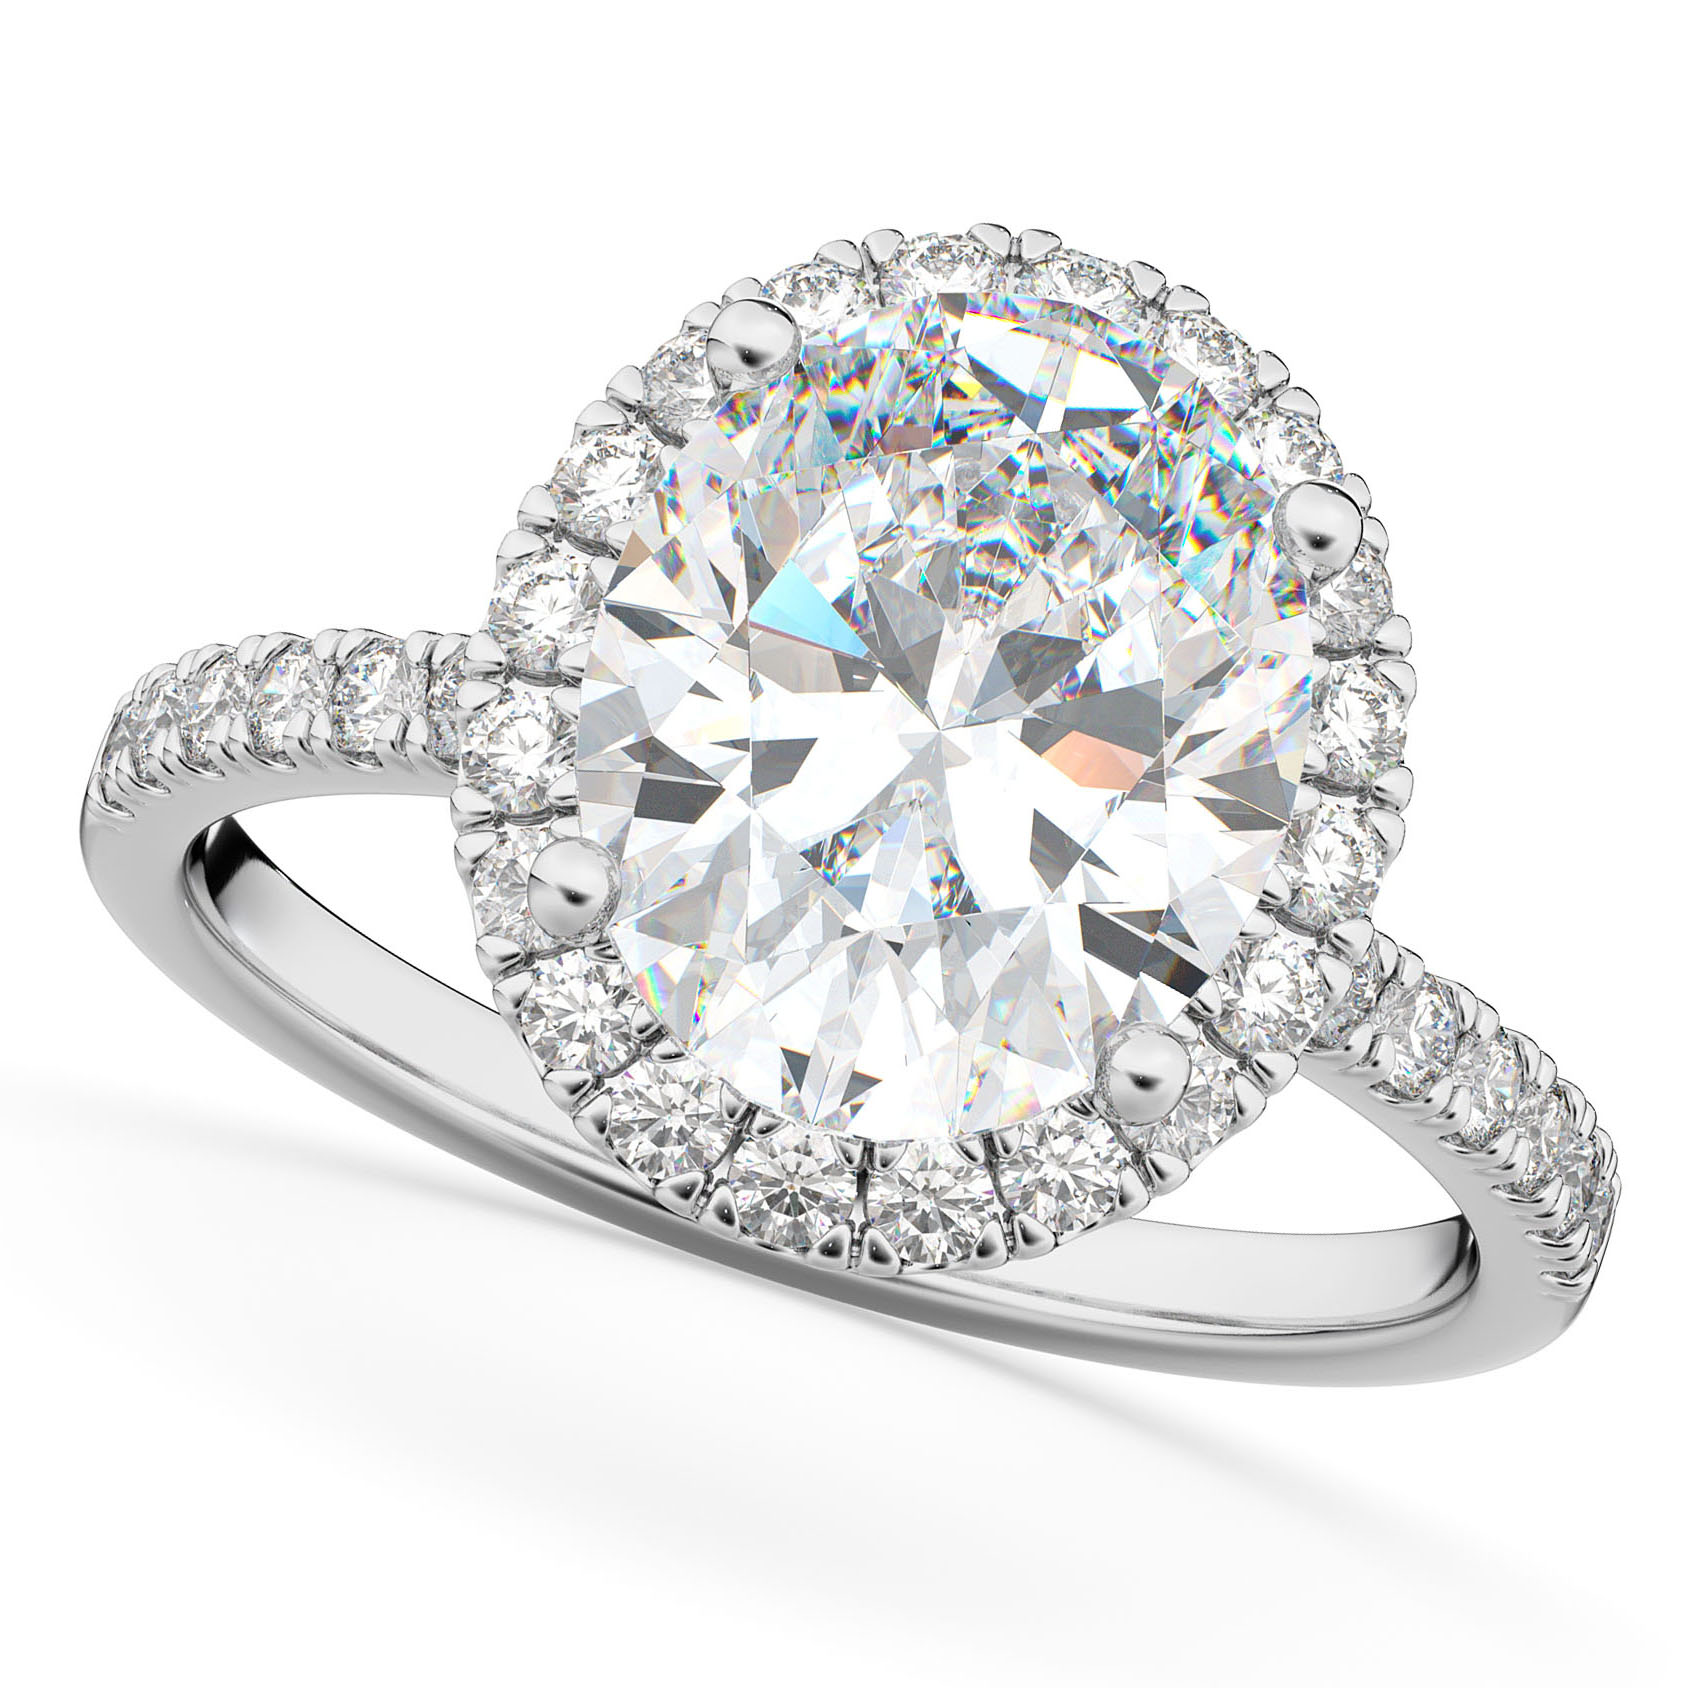 Oval Cut Halo Lab Grown Diamond Engagement Ring 14K White Gold (3.51ct)